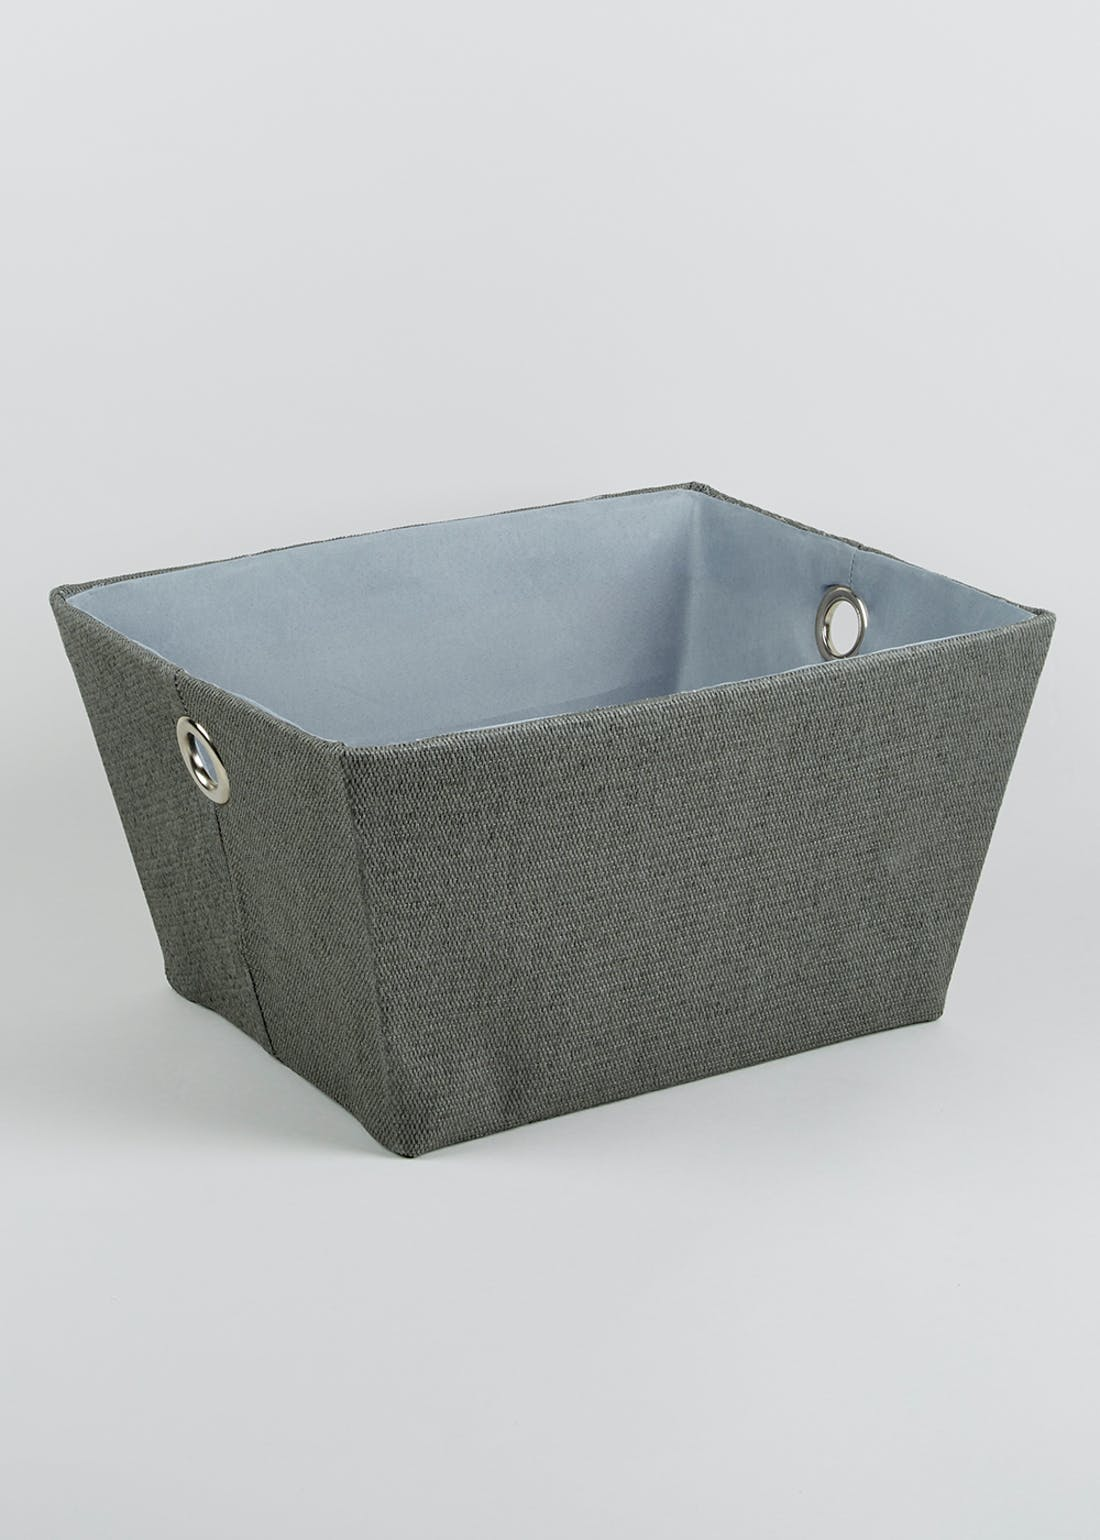 Fabric Storage Tray (43cm x 33cm x 23cm)